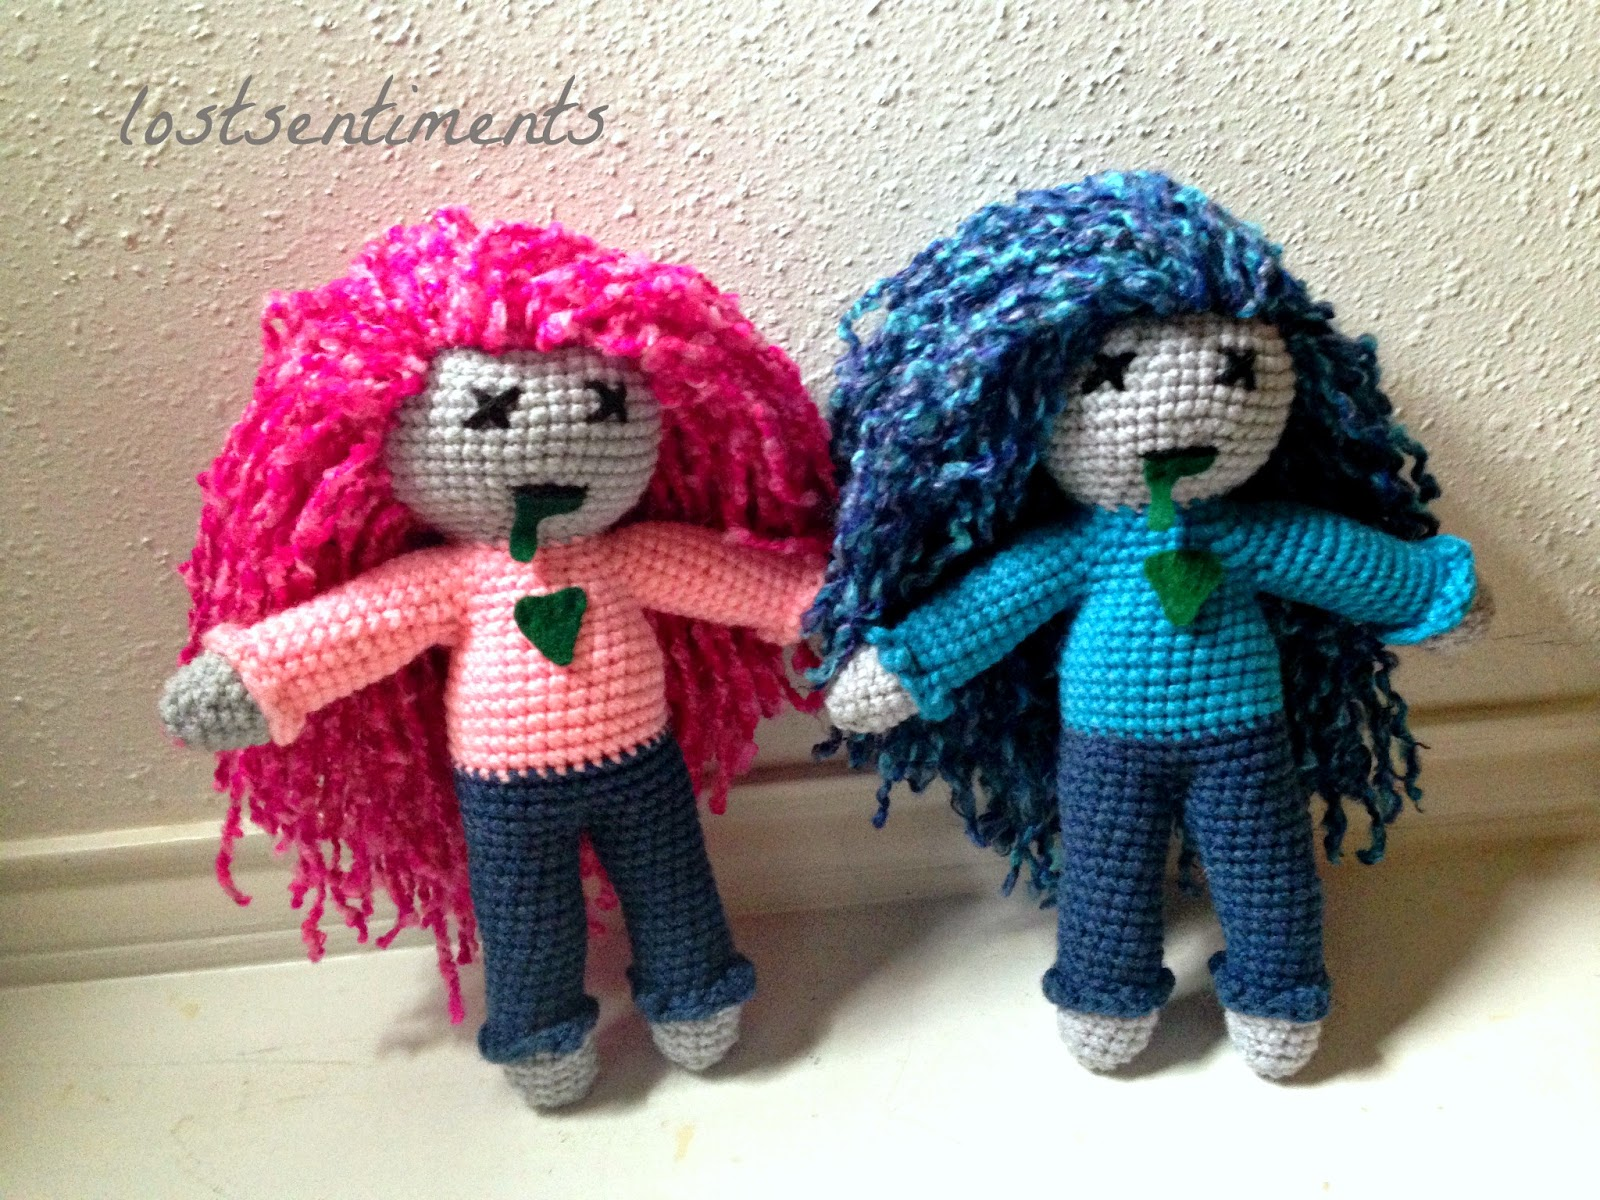 Amigurumi Body Pattern : lostsentiments: Free Amigurumi Pattern for Body of Large Doll